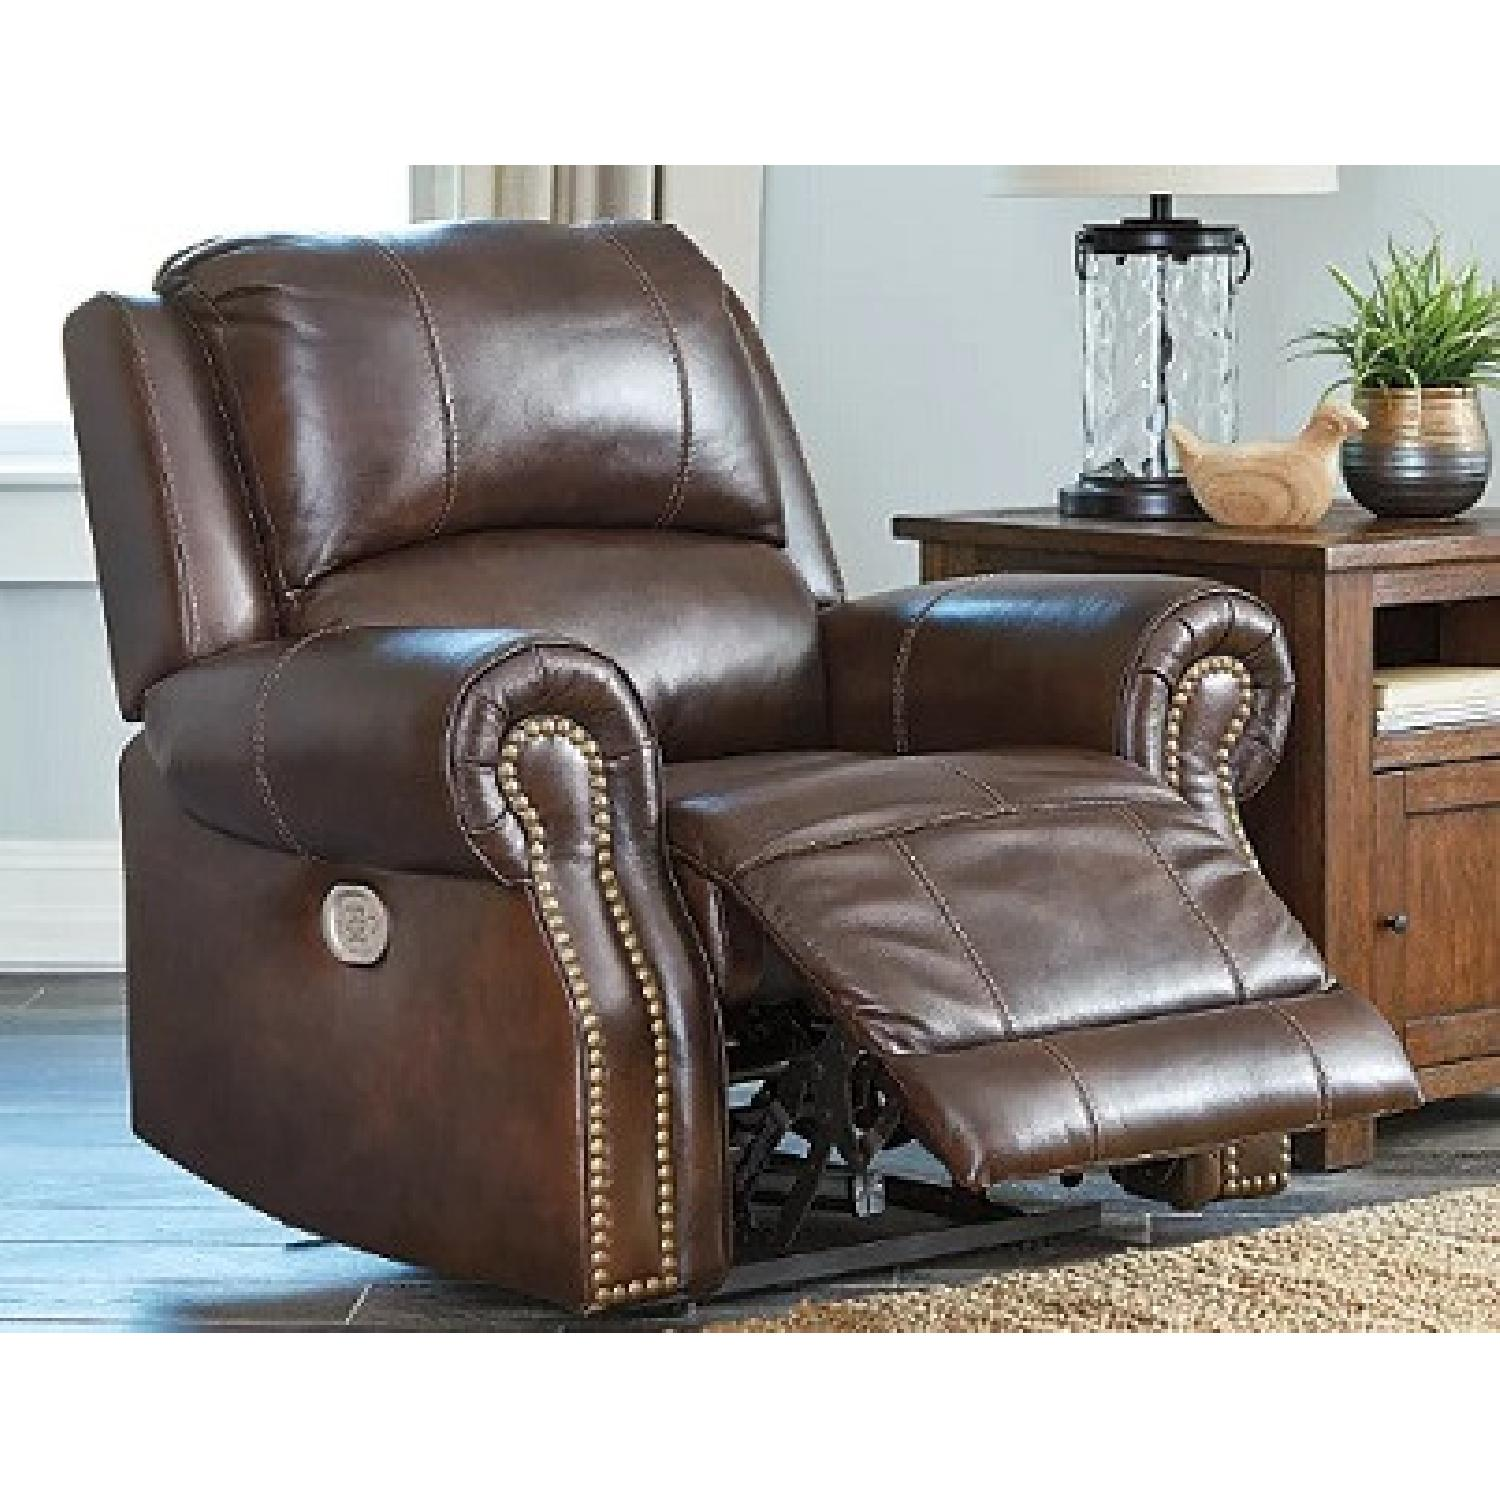 Ashley Furniture Power Reclining Chair - image-4